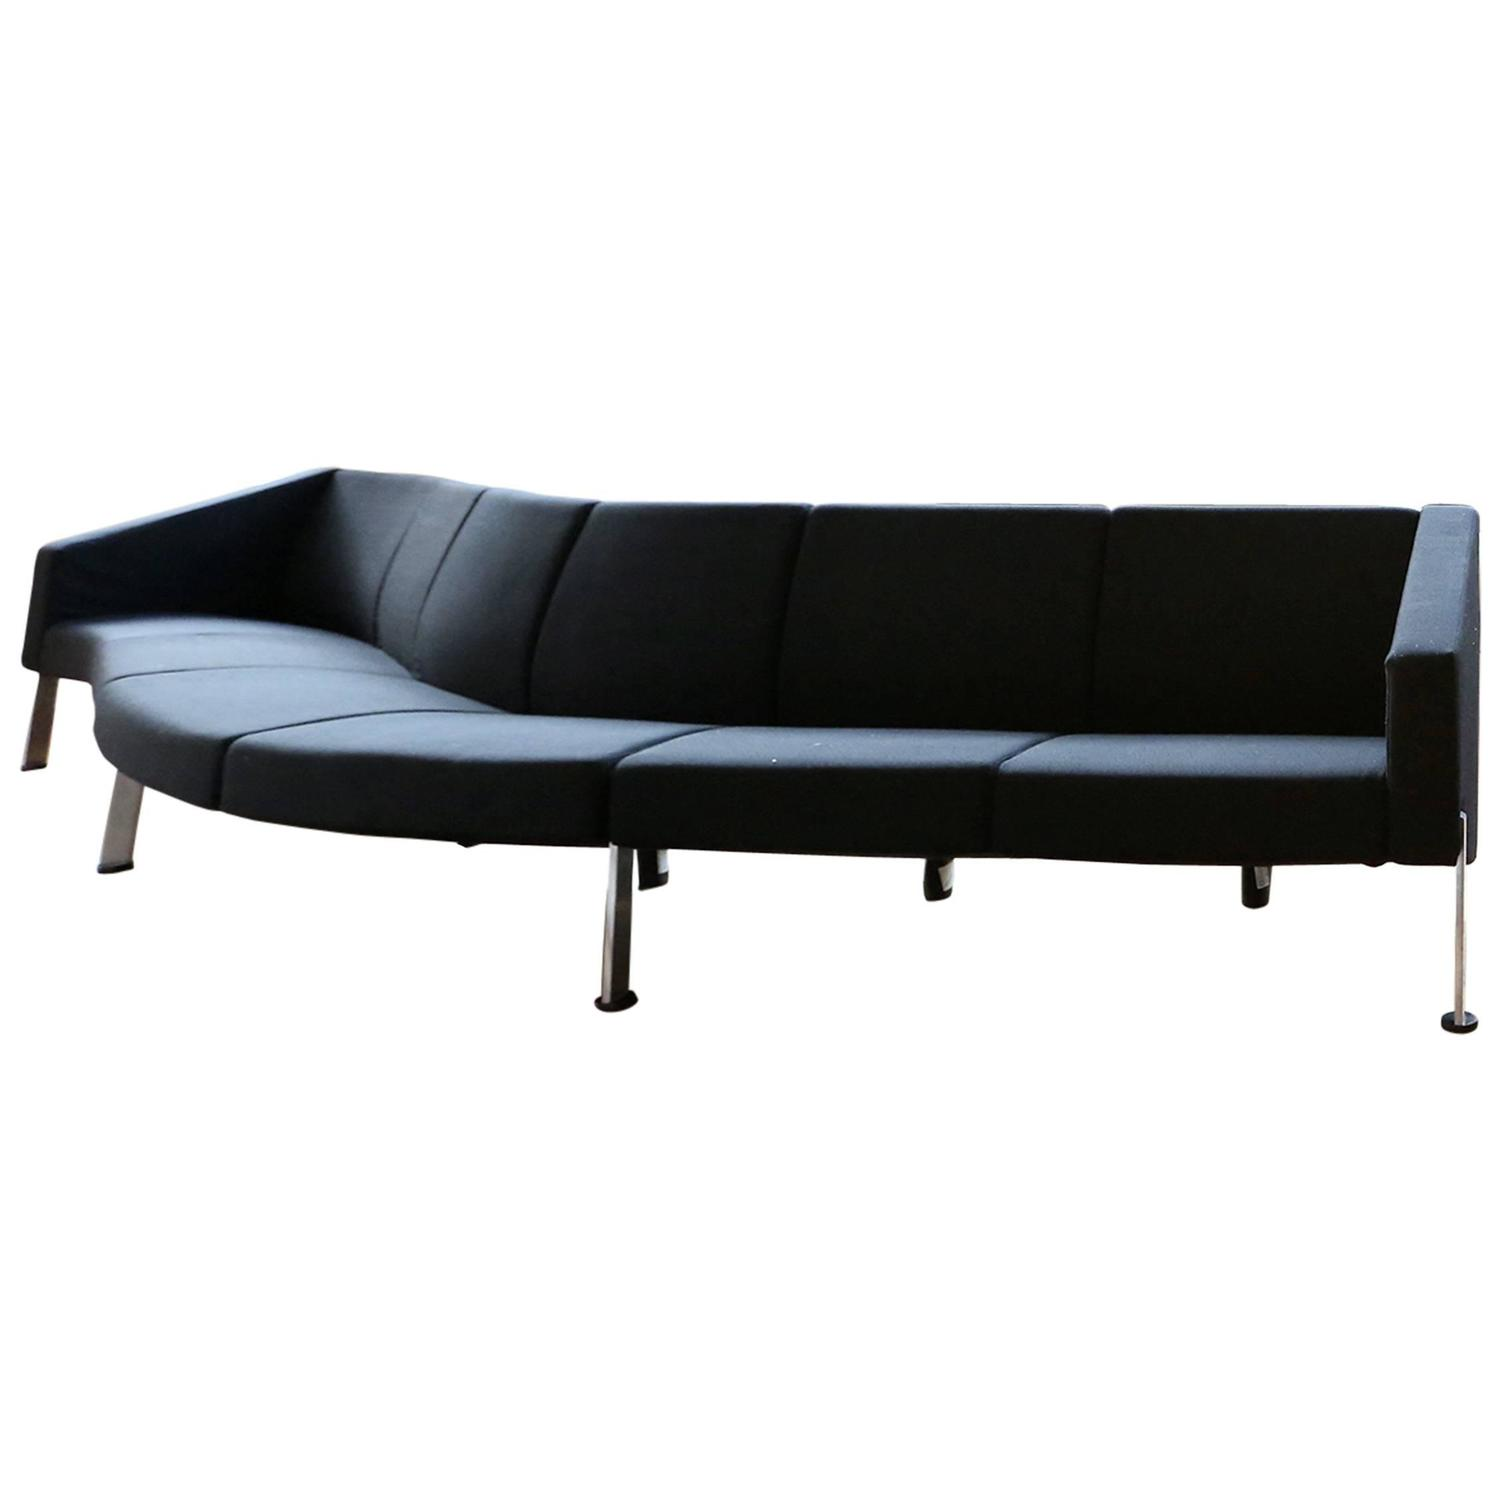 huge 39 decision 39 sofa by fritz hansen for sale at 1stdibs. Black Bedroom Furniture Sets. Home Design Ideas